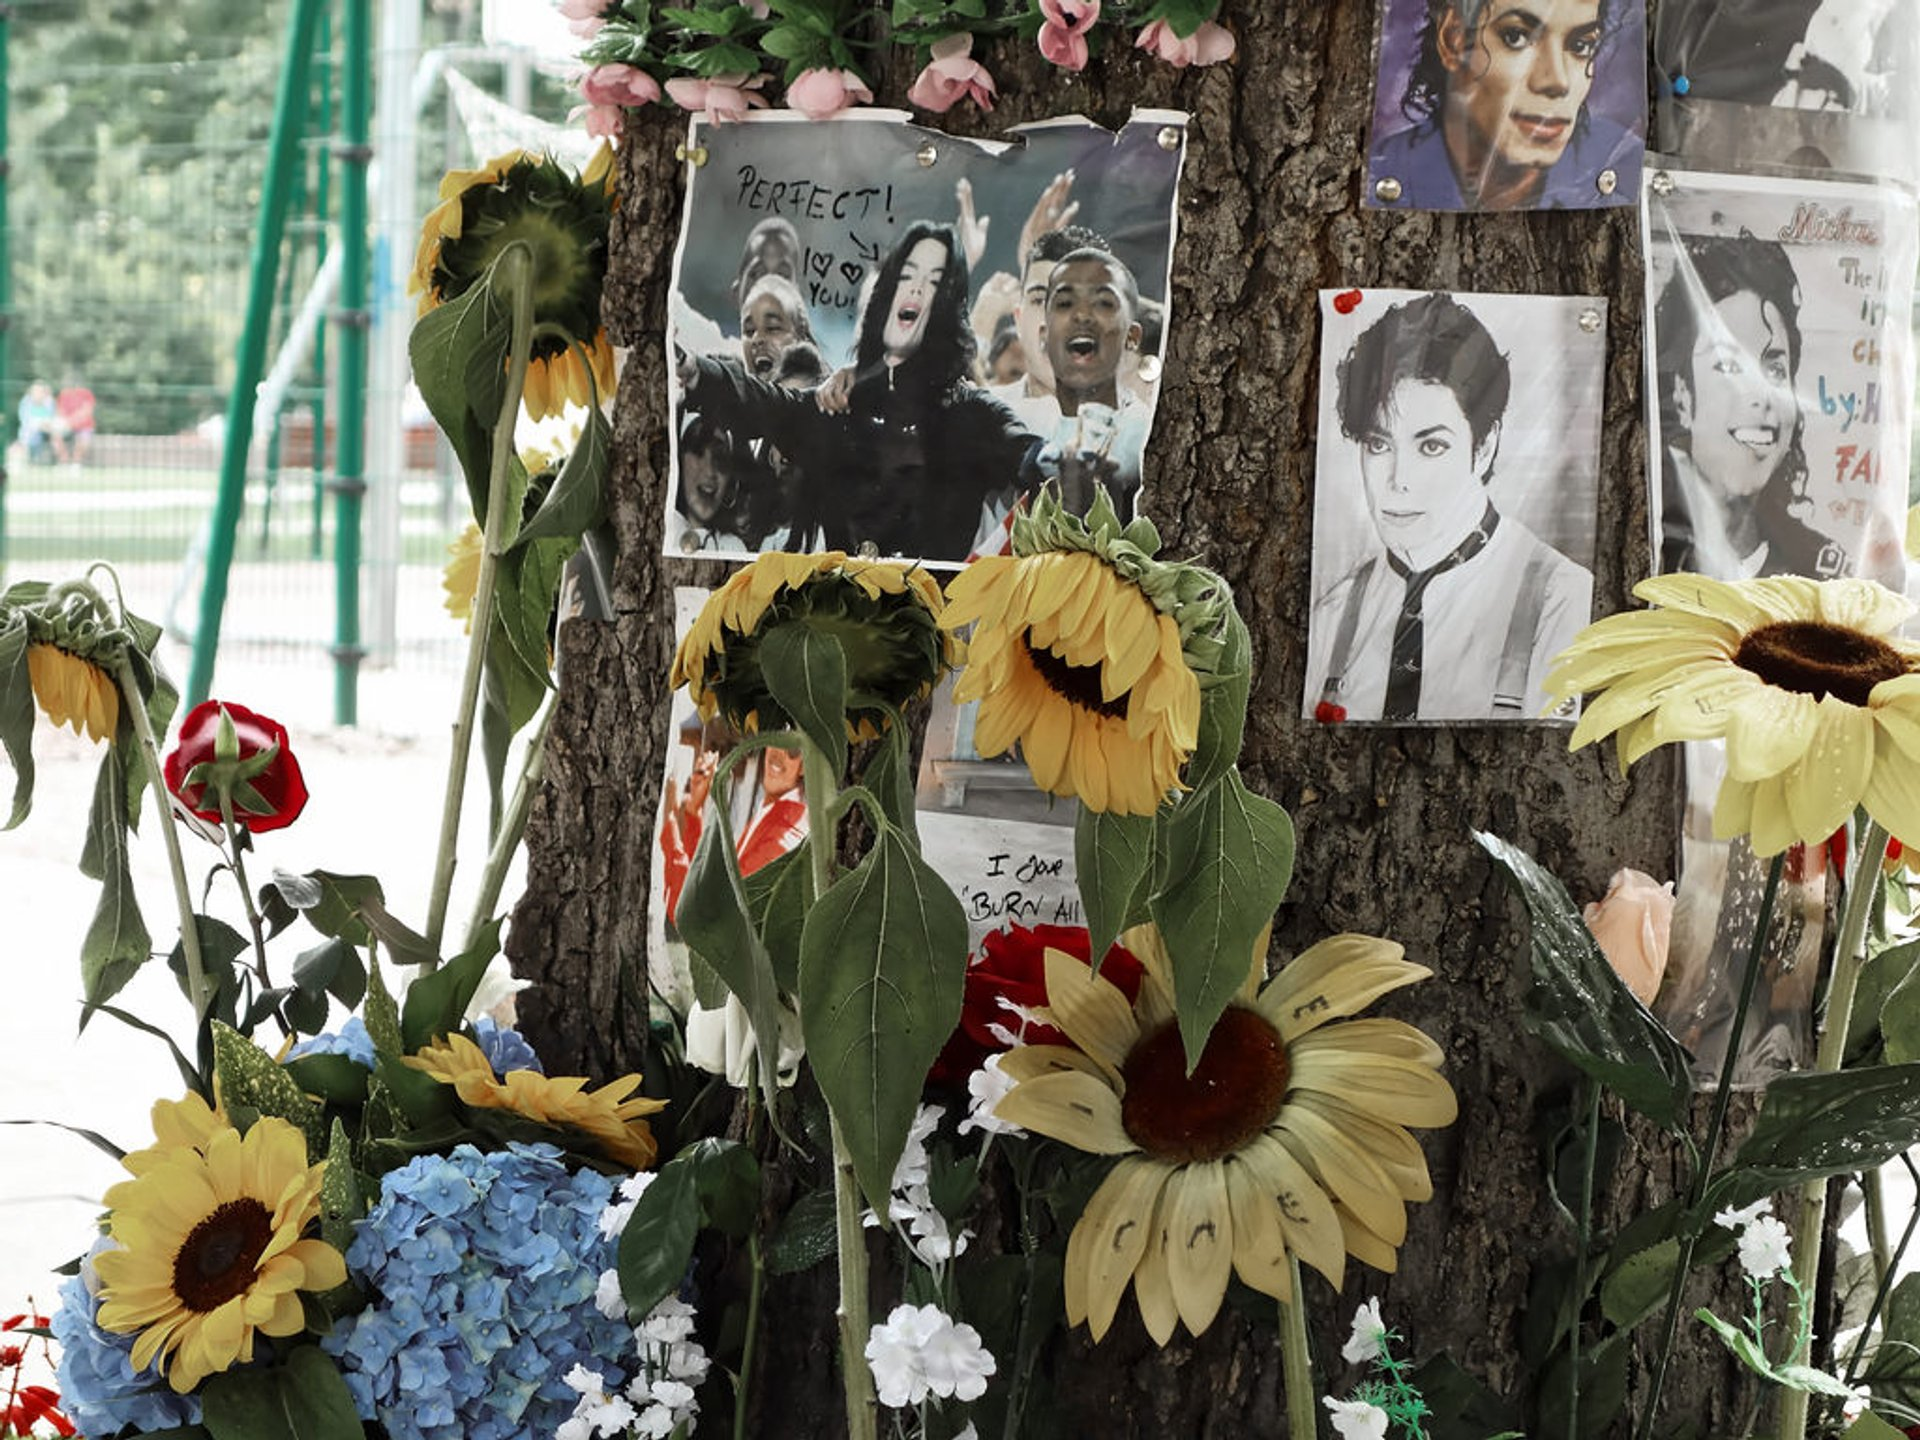 Michael Jackson Memorial Tree in Hungary 2020 - Best Time